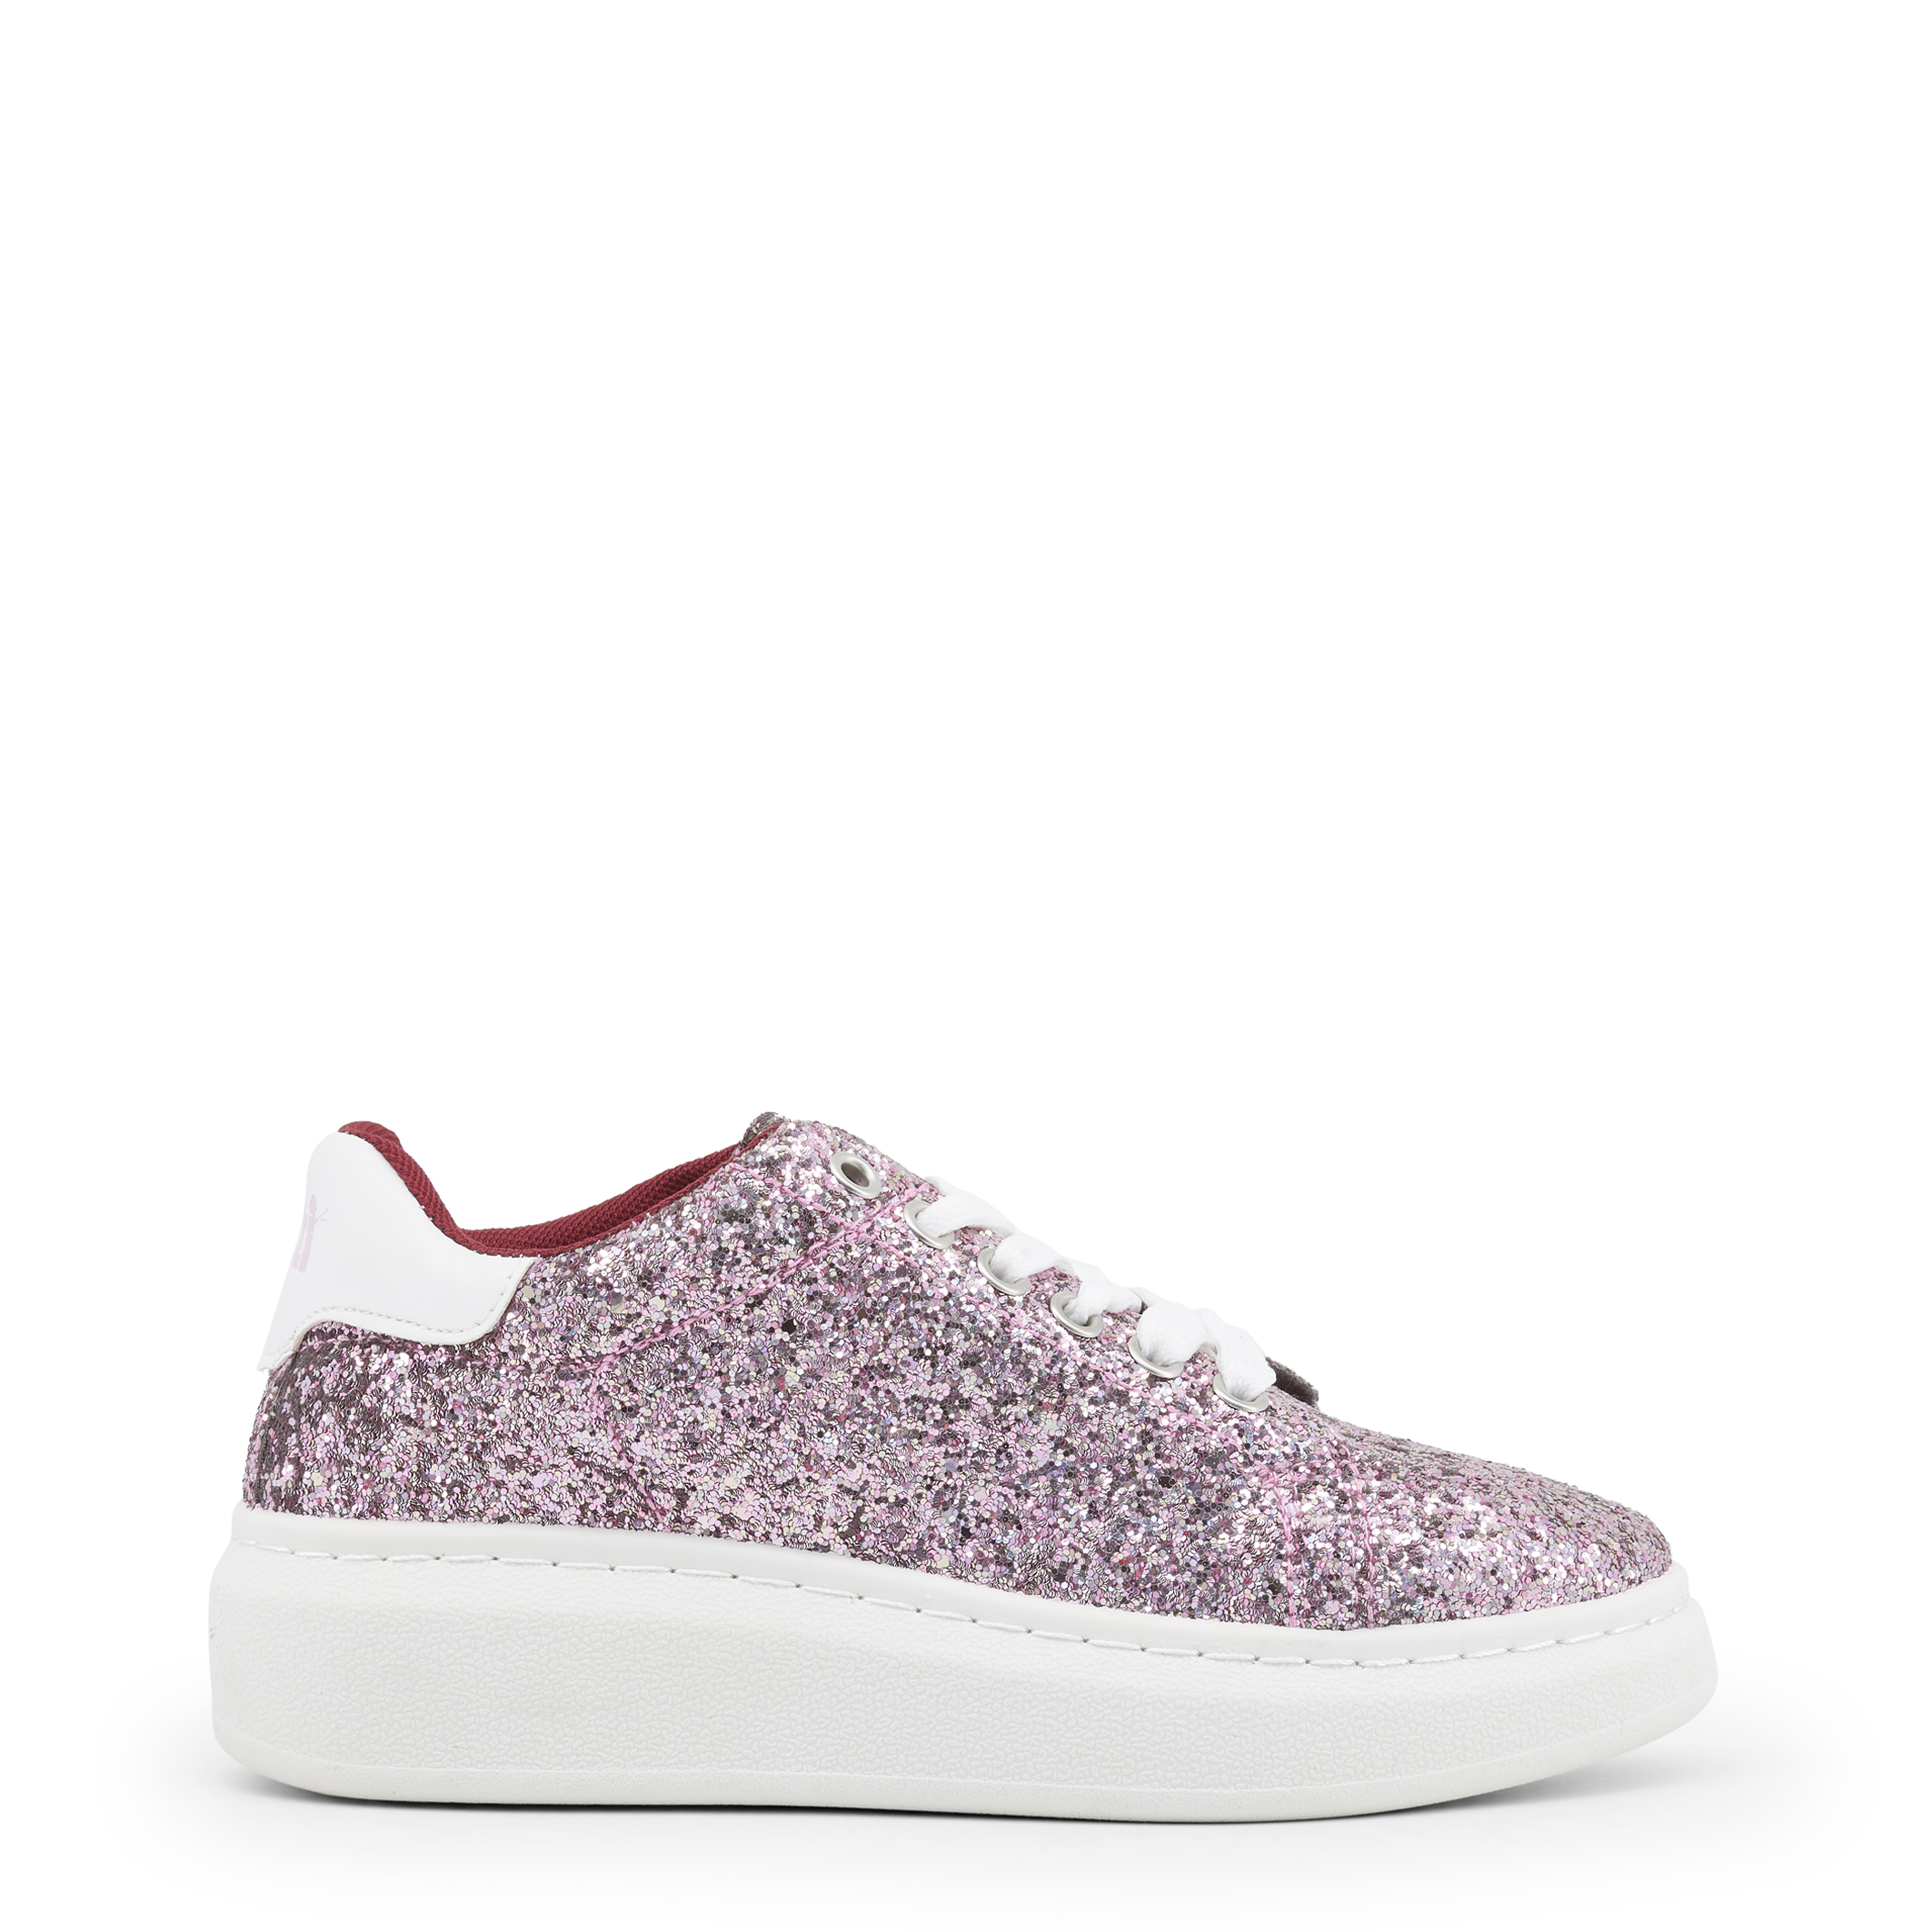 046172 Femme 90638 Chaussures Rose Xti 6wOUHqBB